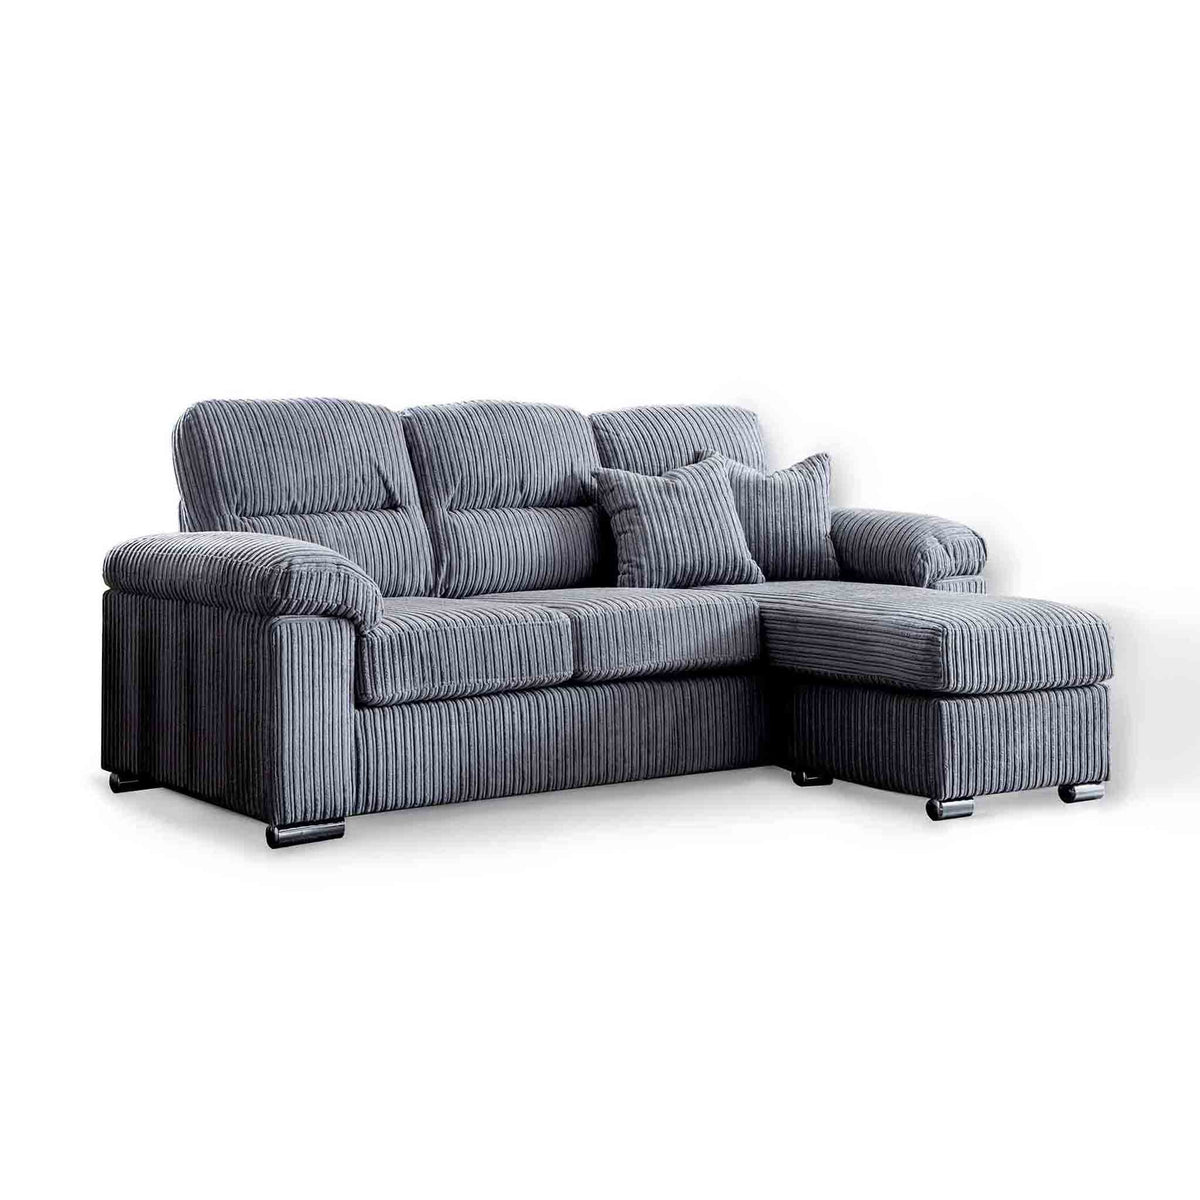 Amalfi Charcoal Corner Chaise Fabric Settee from Roseland Furniture